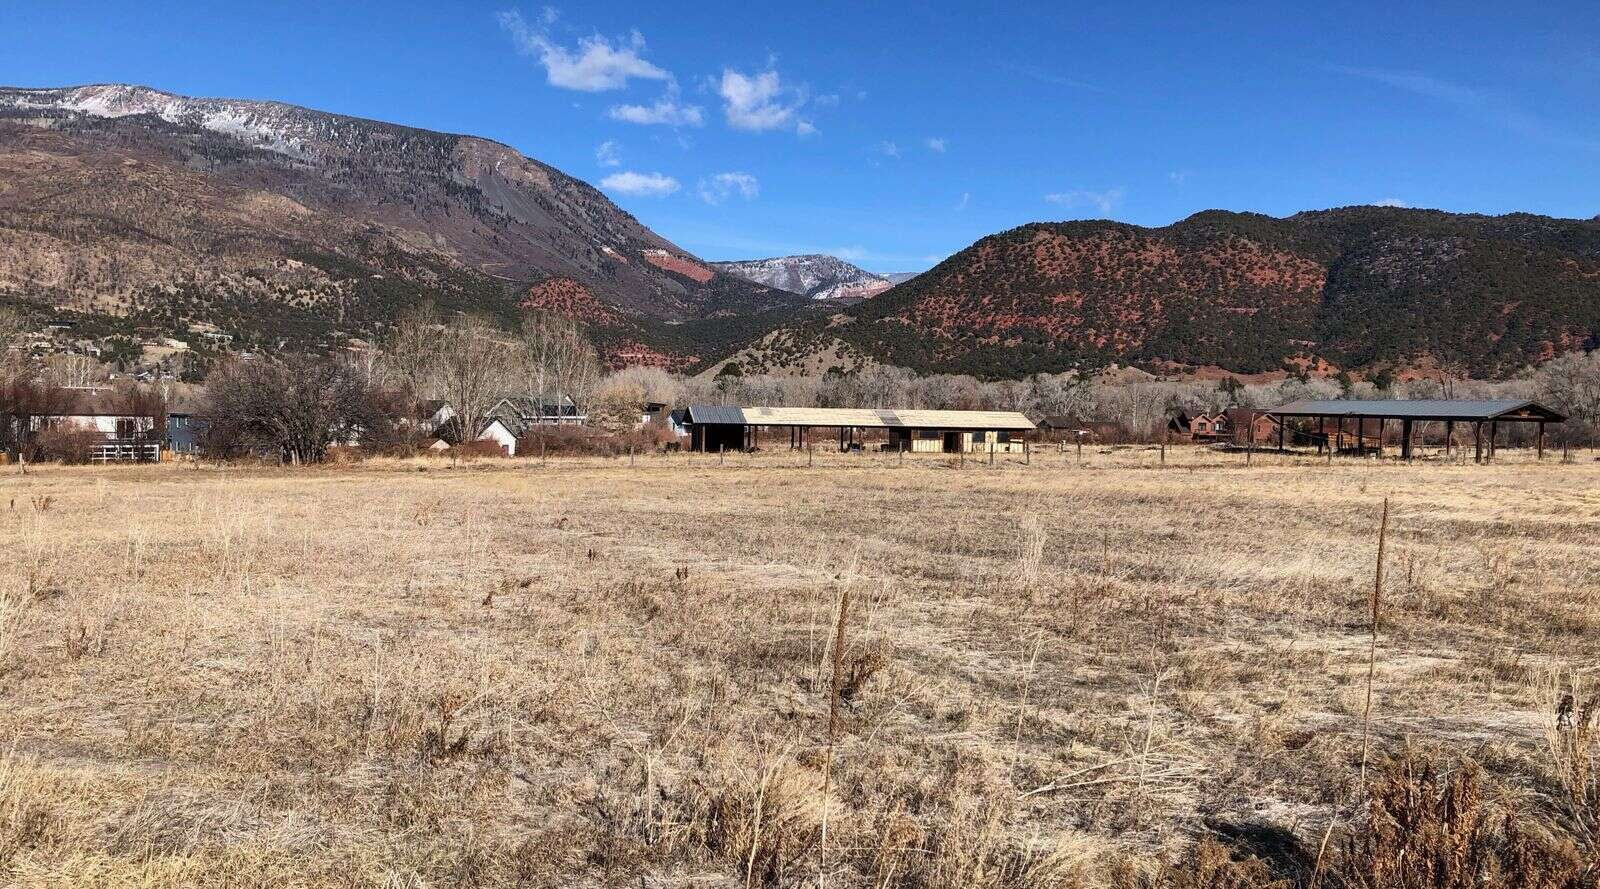 The Stott's Mill property in Southside has been cleaned up and infrastructure work is expected to start this month. Construction on the first phase of the project will start in 2021. (Scott Condon/The Aspen Times)